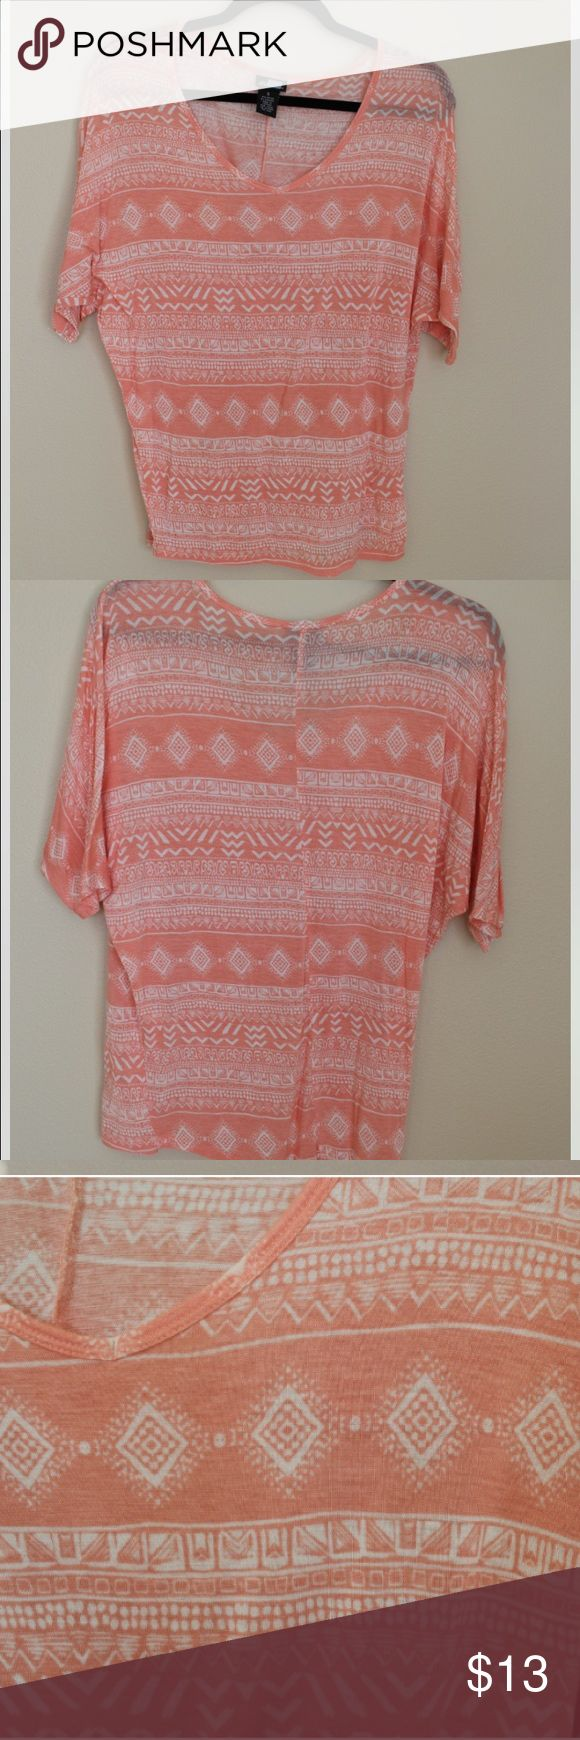 Peach & Cream Aztec Print Dolman Top. Super Soft. This slouchy dolman top is stretchy and soft. Features cream colored Aztec print on peach background. Worn a couple times. No visible signs of wear. Fits like Medium. Tops Tees - Short Sleeve